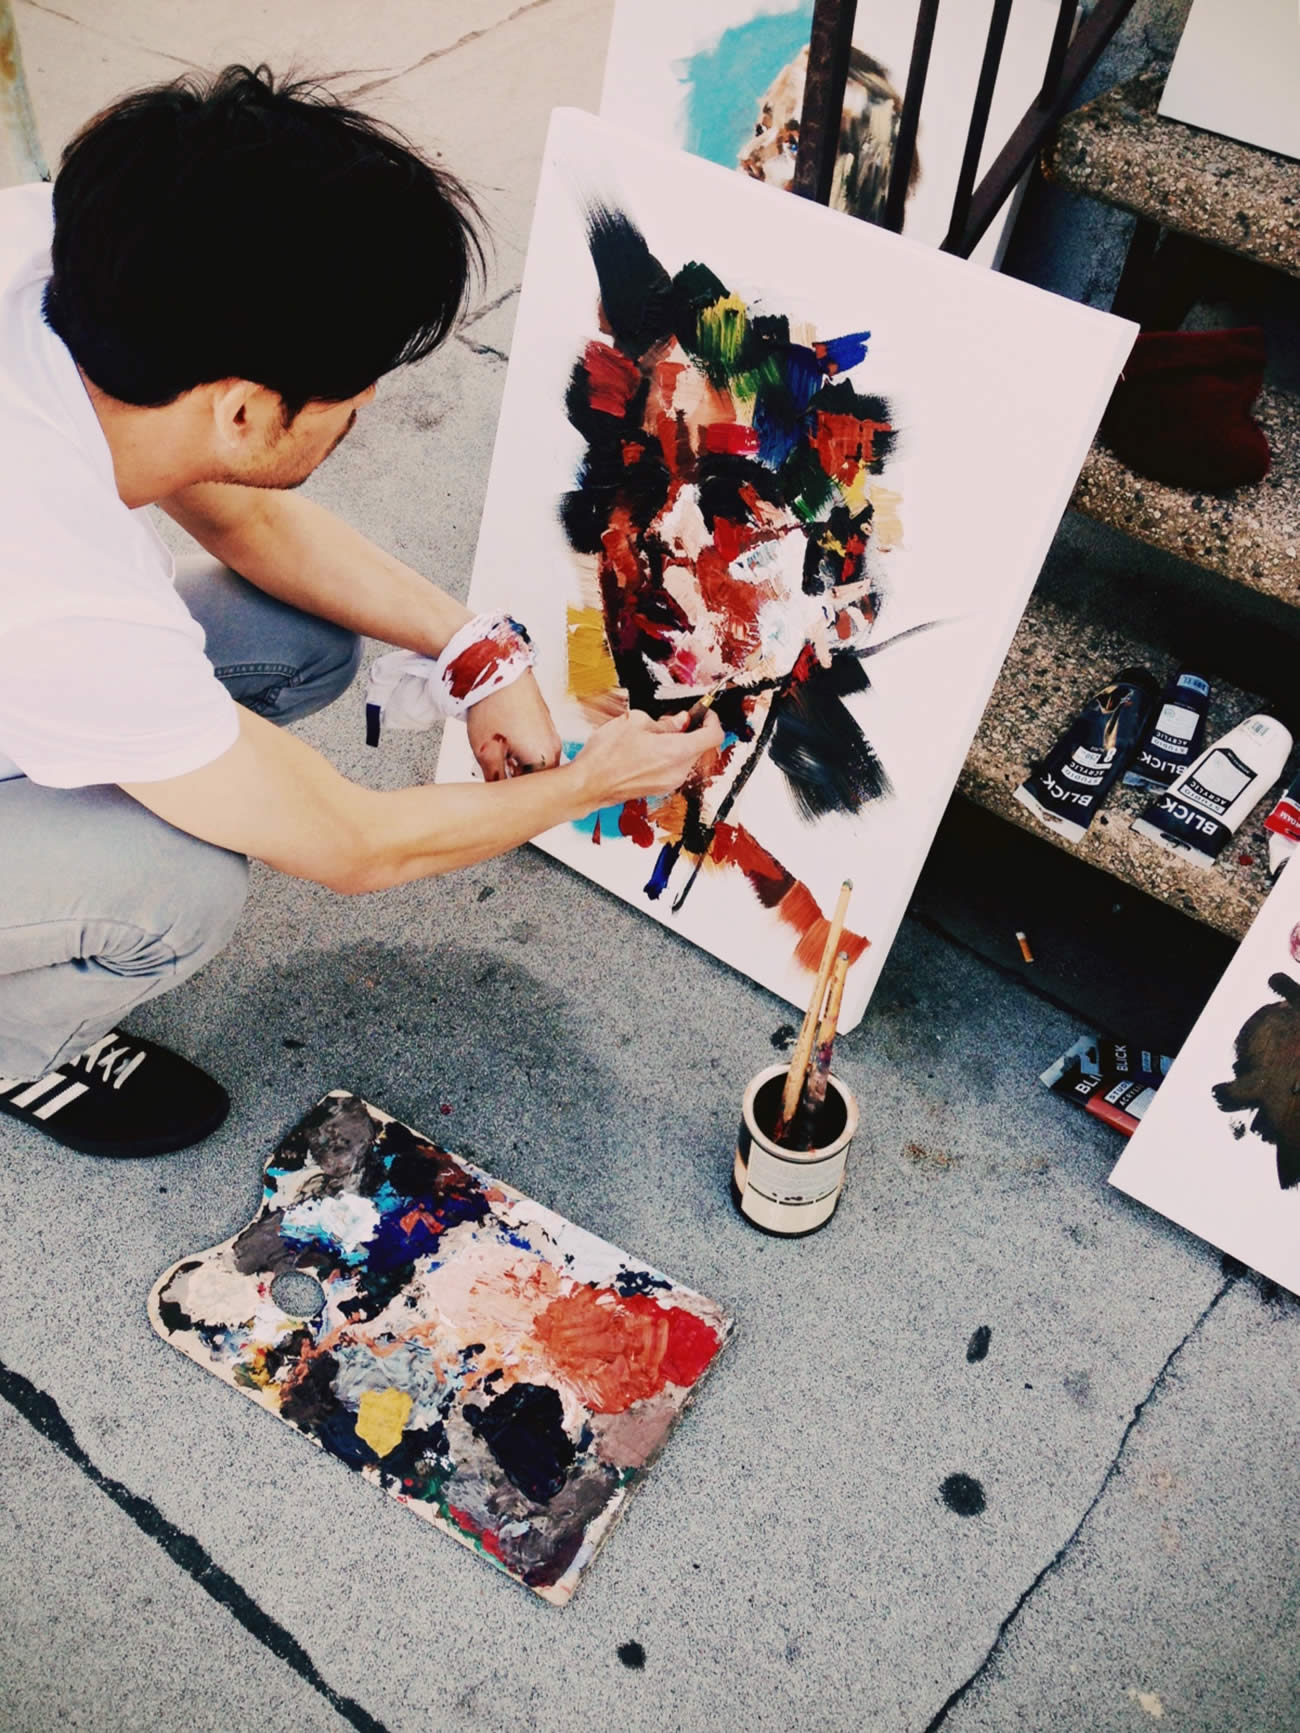 Joseph lee working on a portrait painting